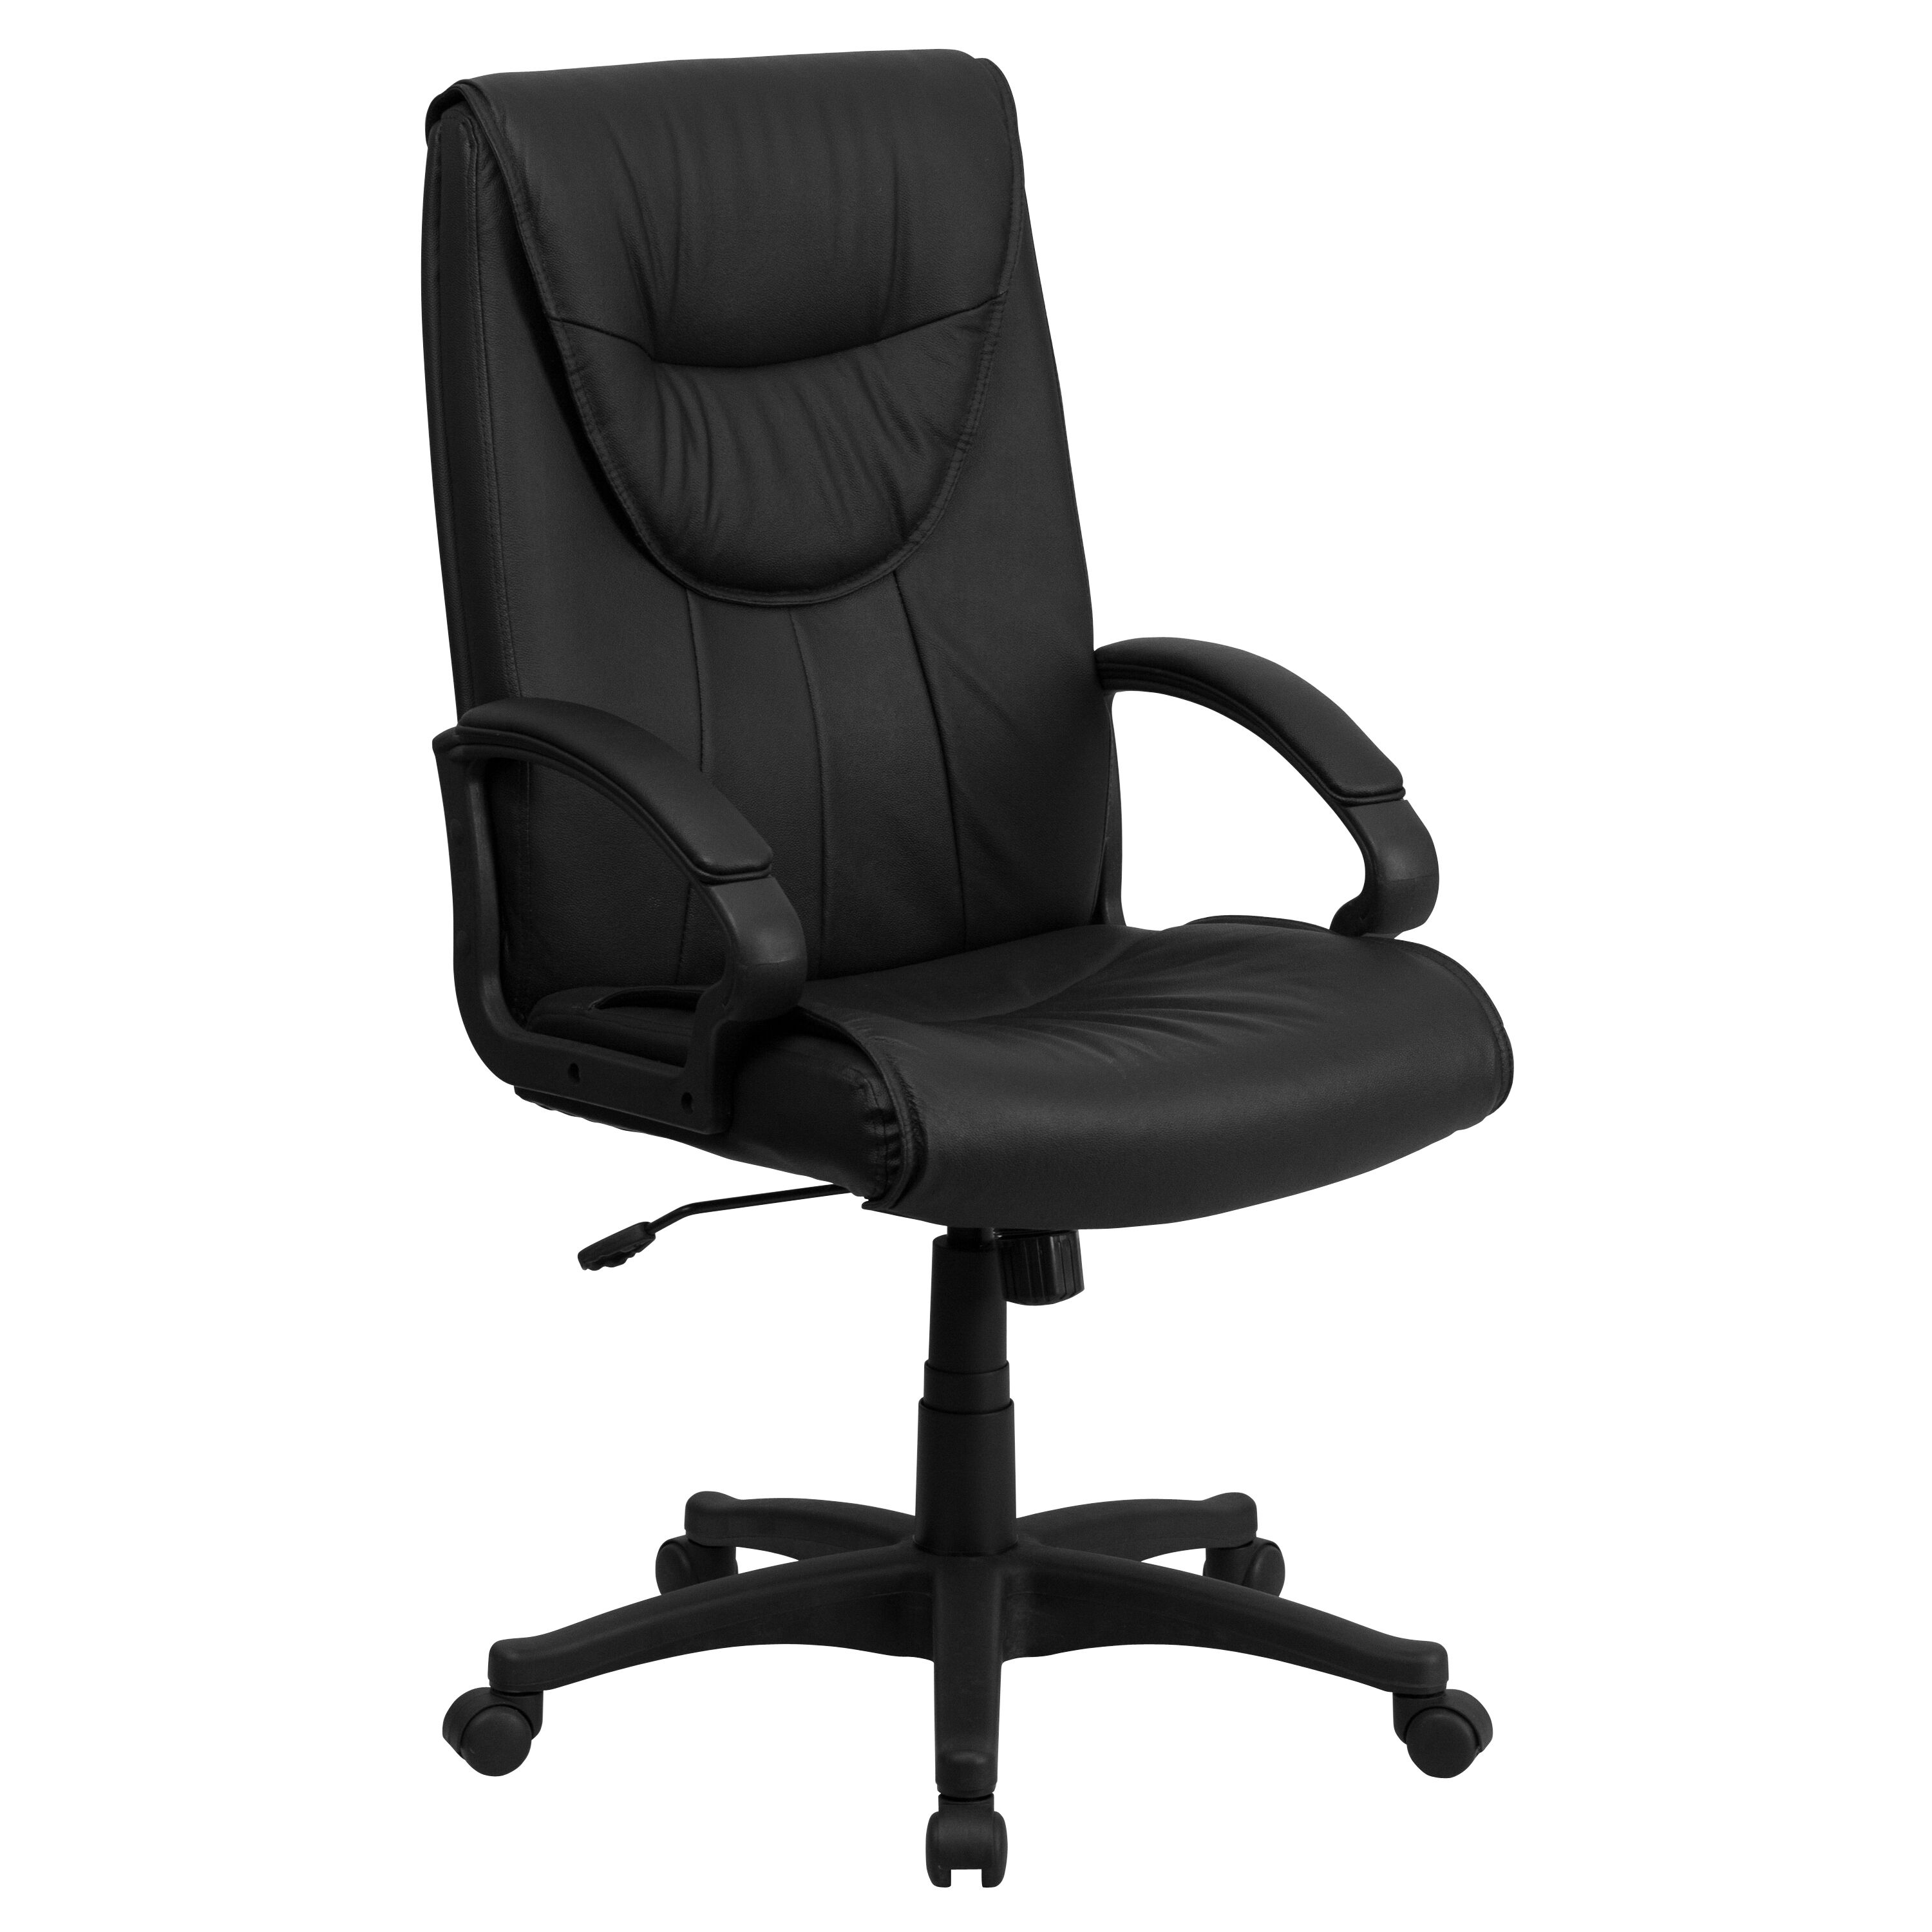 executive revolving chair specifications cover hire tamworth black high back leather bt 238 bk gg bizchair